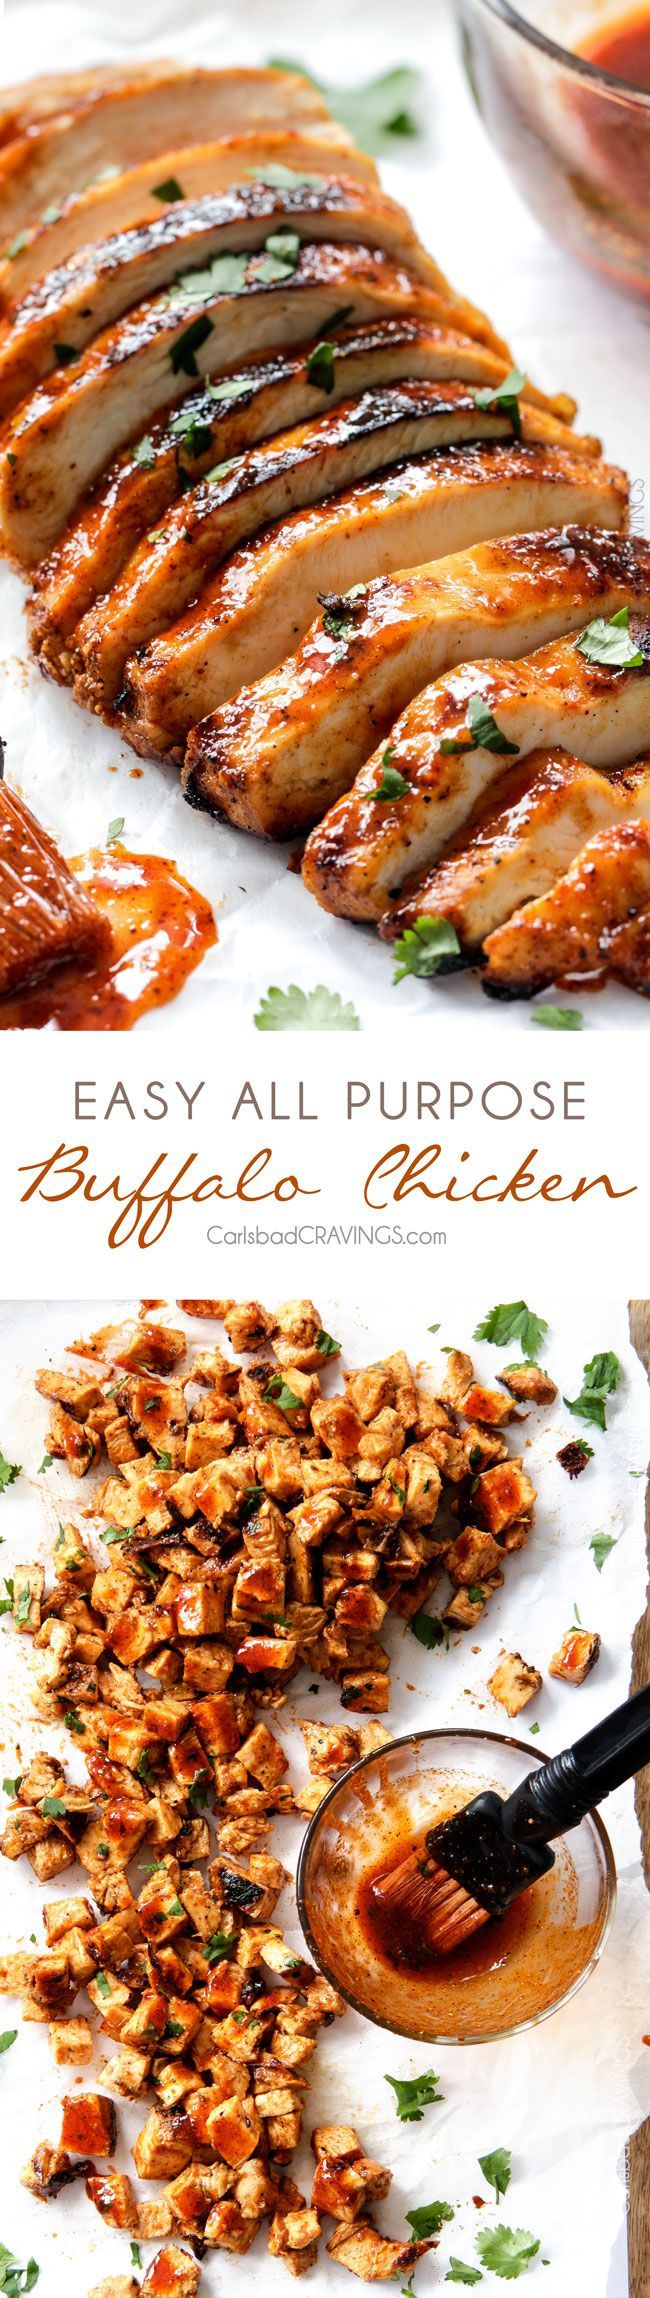 ll Purpose Buffalo Chicken Marinade - SO juicy and flavorful from the easy marinade and is a meal all by itself or instantly transforms salads, sandwiches, wraps, tacos, etc into the most flavor bursting meal EVER!